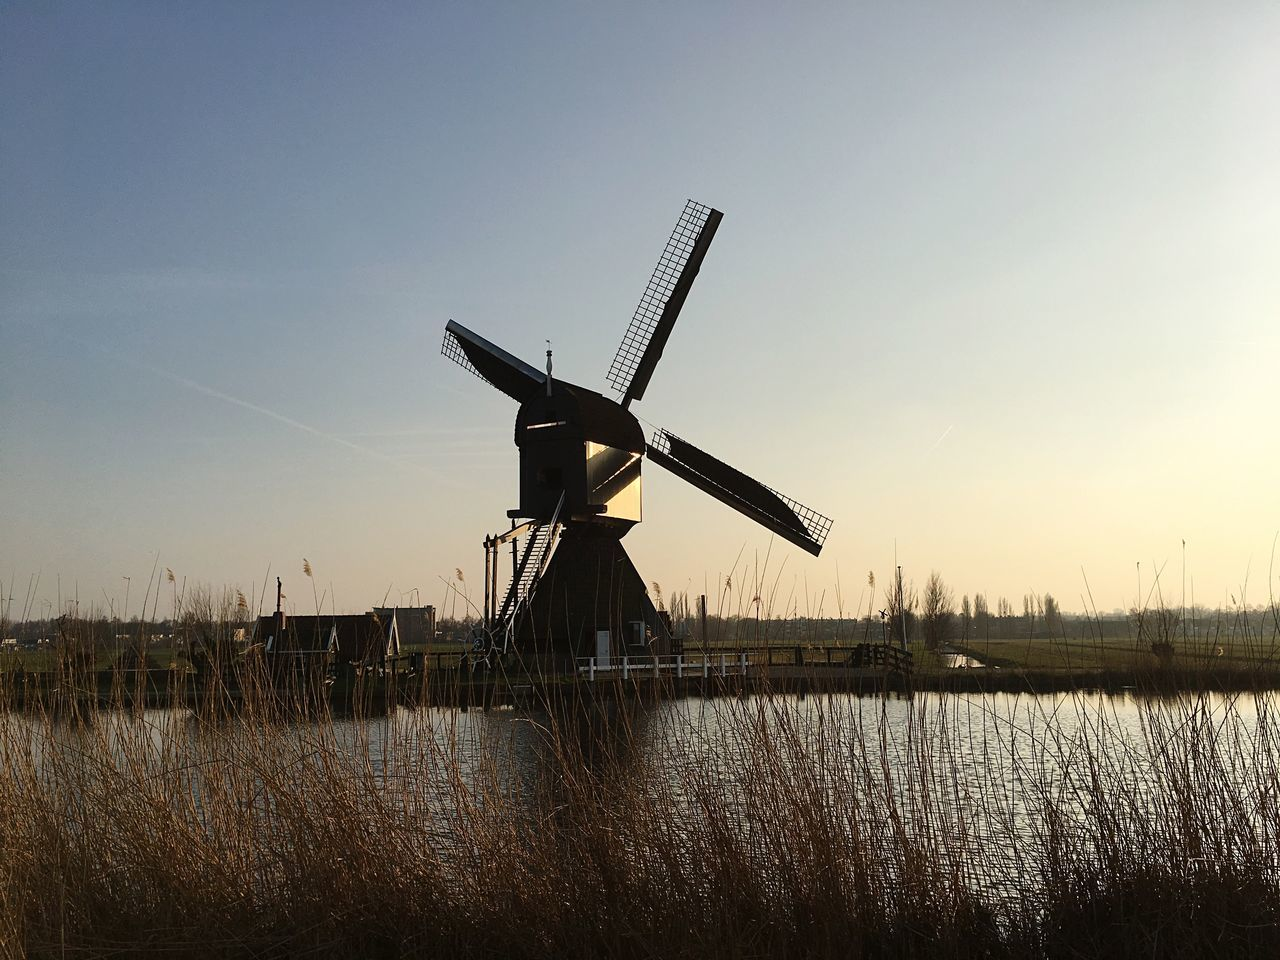 wind power, alternative energy, wind turbine, windmill, renewable energy, fuel and power generation, environmental conservation, traditional windmill, industrial windmill, nature, sky, outdoors, rural scene, no people, water, field, clear sky, day, lake, scenics, technology, architecture, beauty in nature